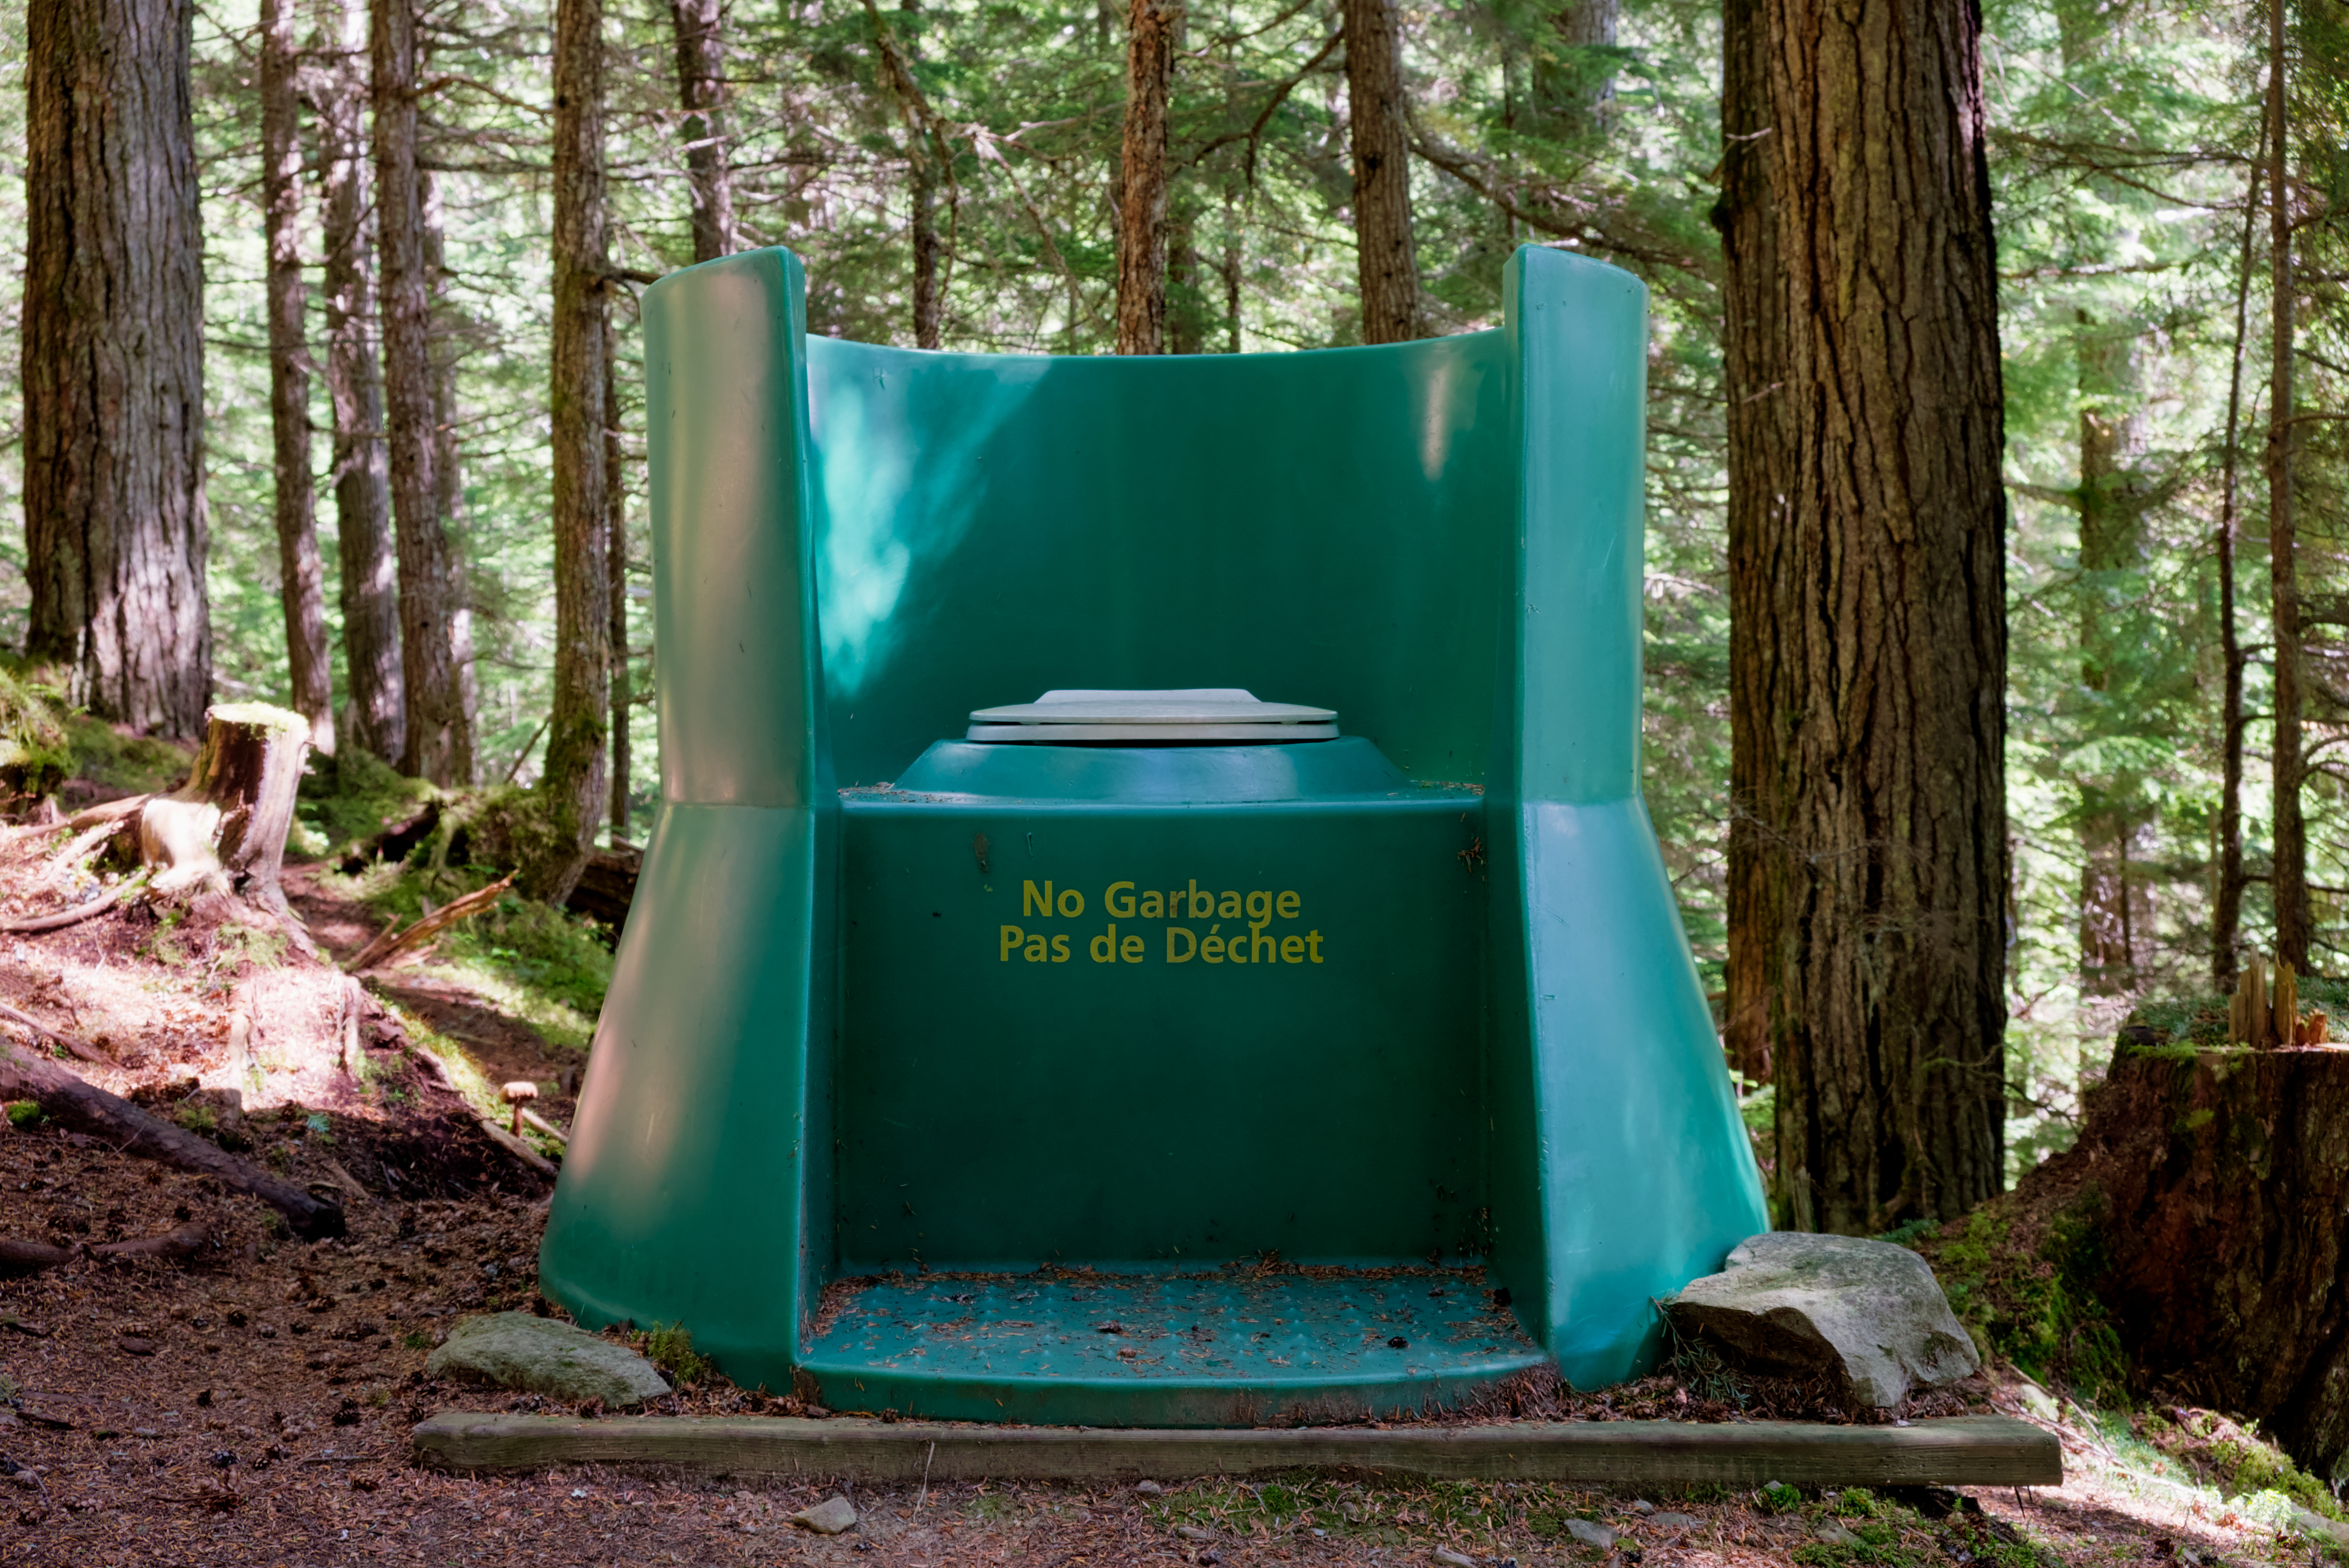 Camping Composting Toilet : File:throne over the woods style composting toilet at campsite 32 in